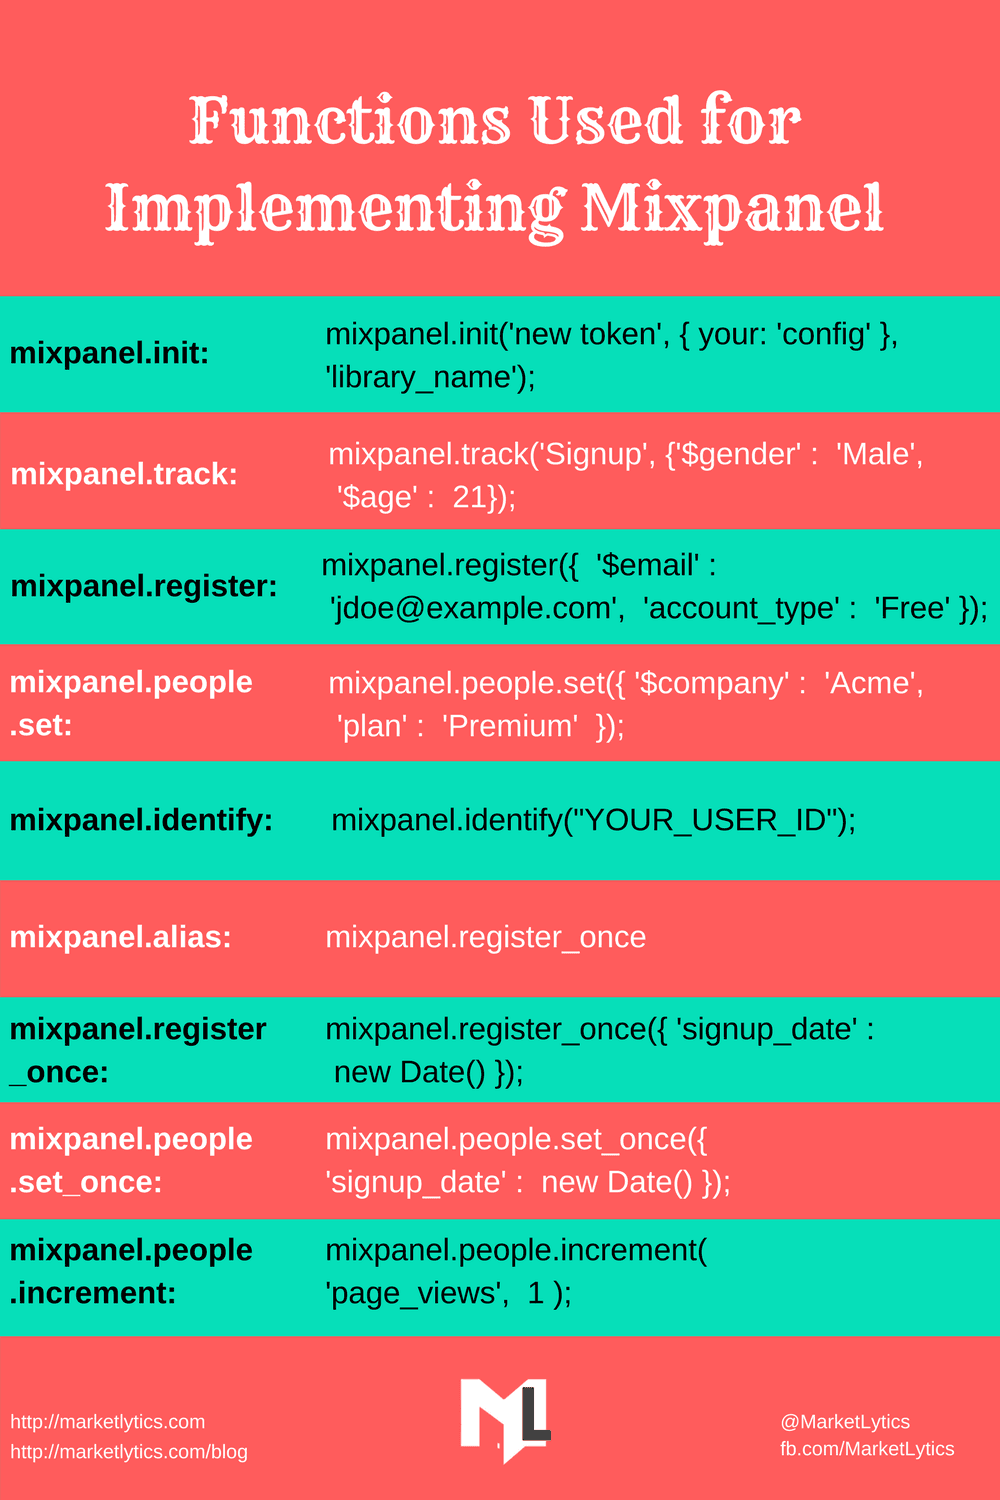 mixpanel functions checklist